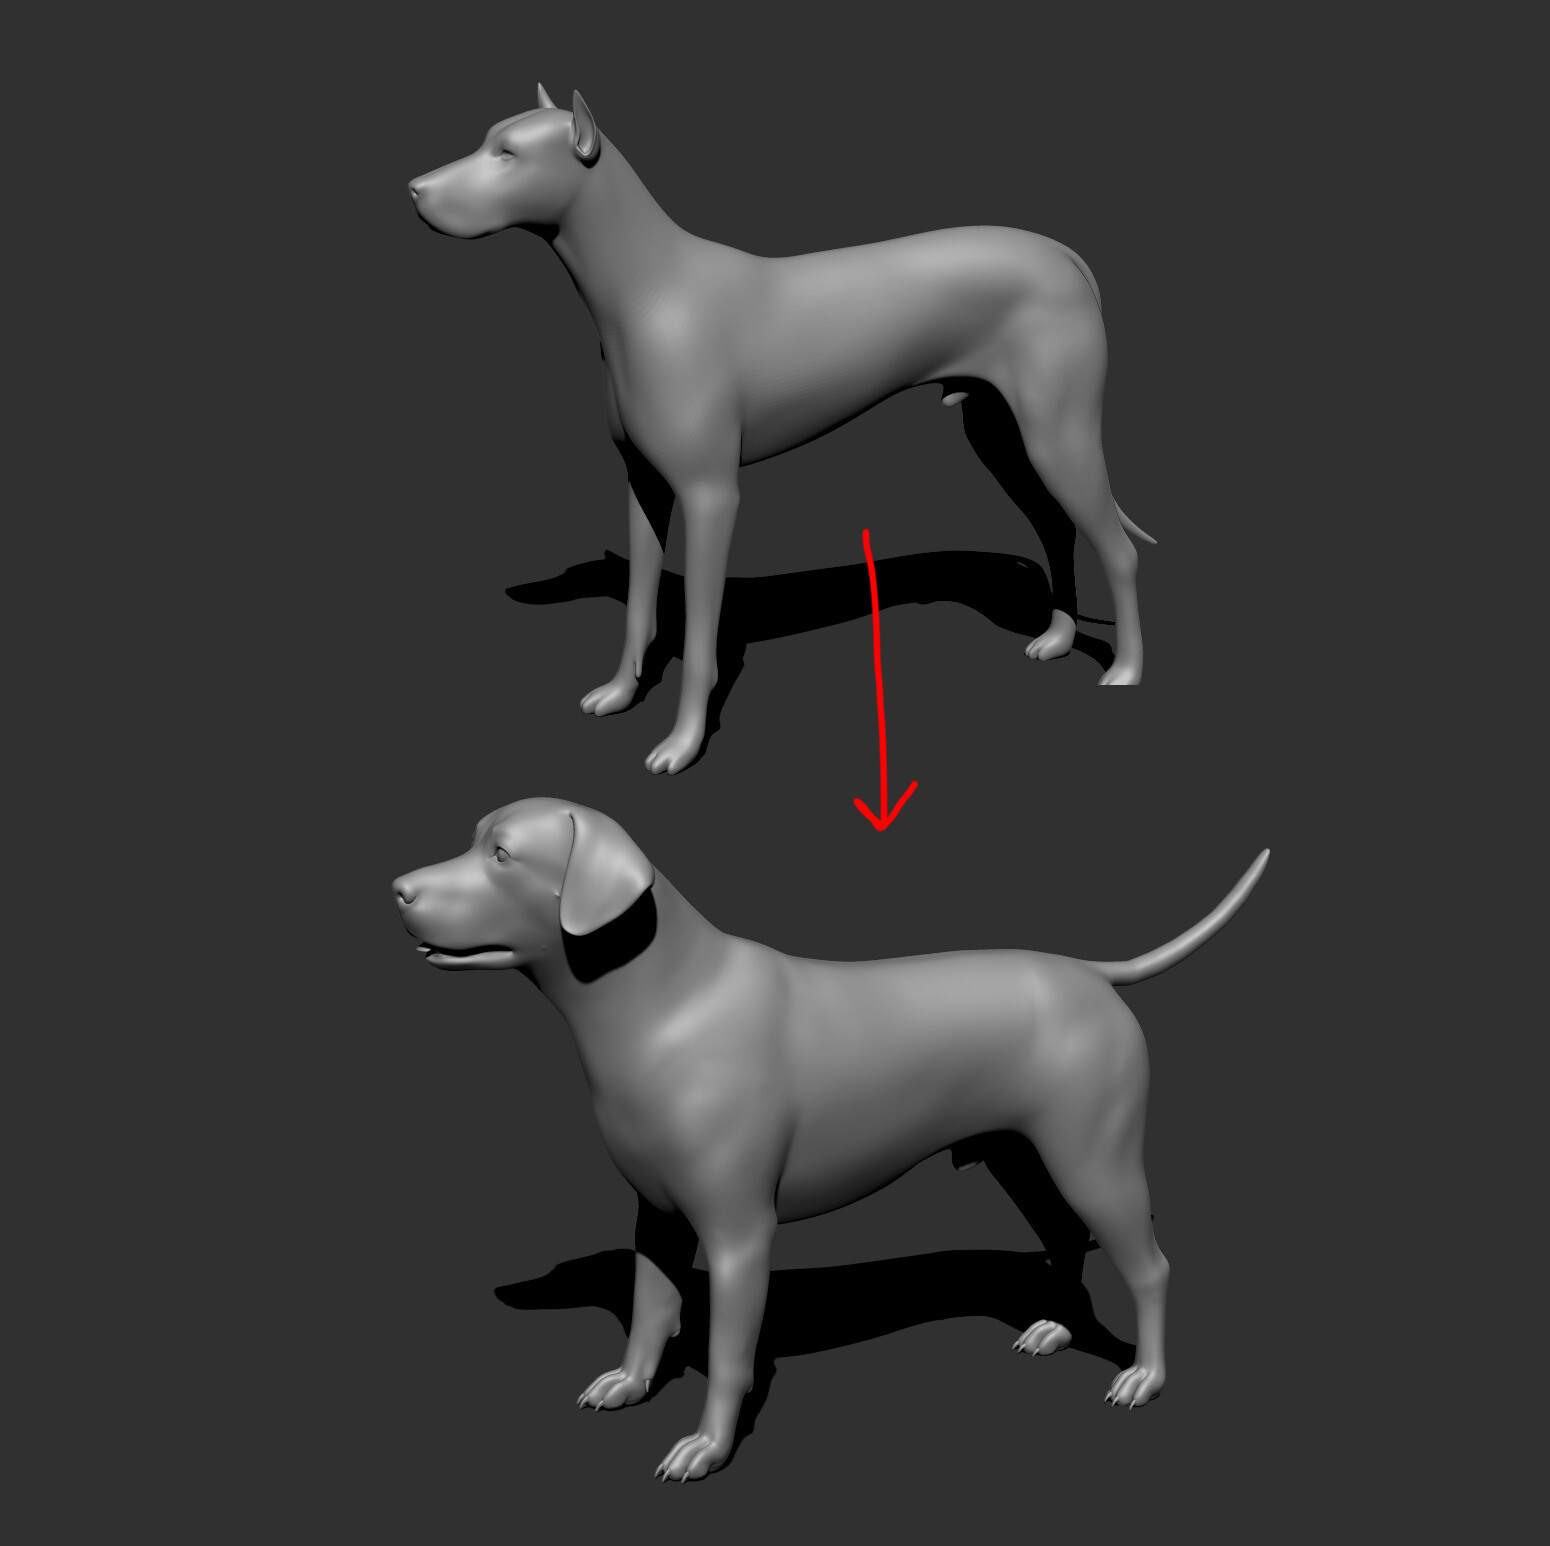 Zbrush sculpt from standard dog project